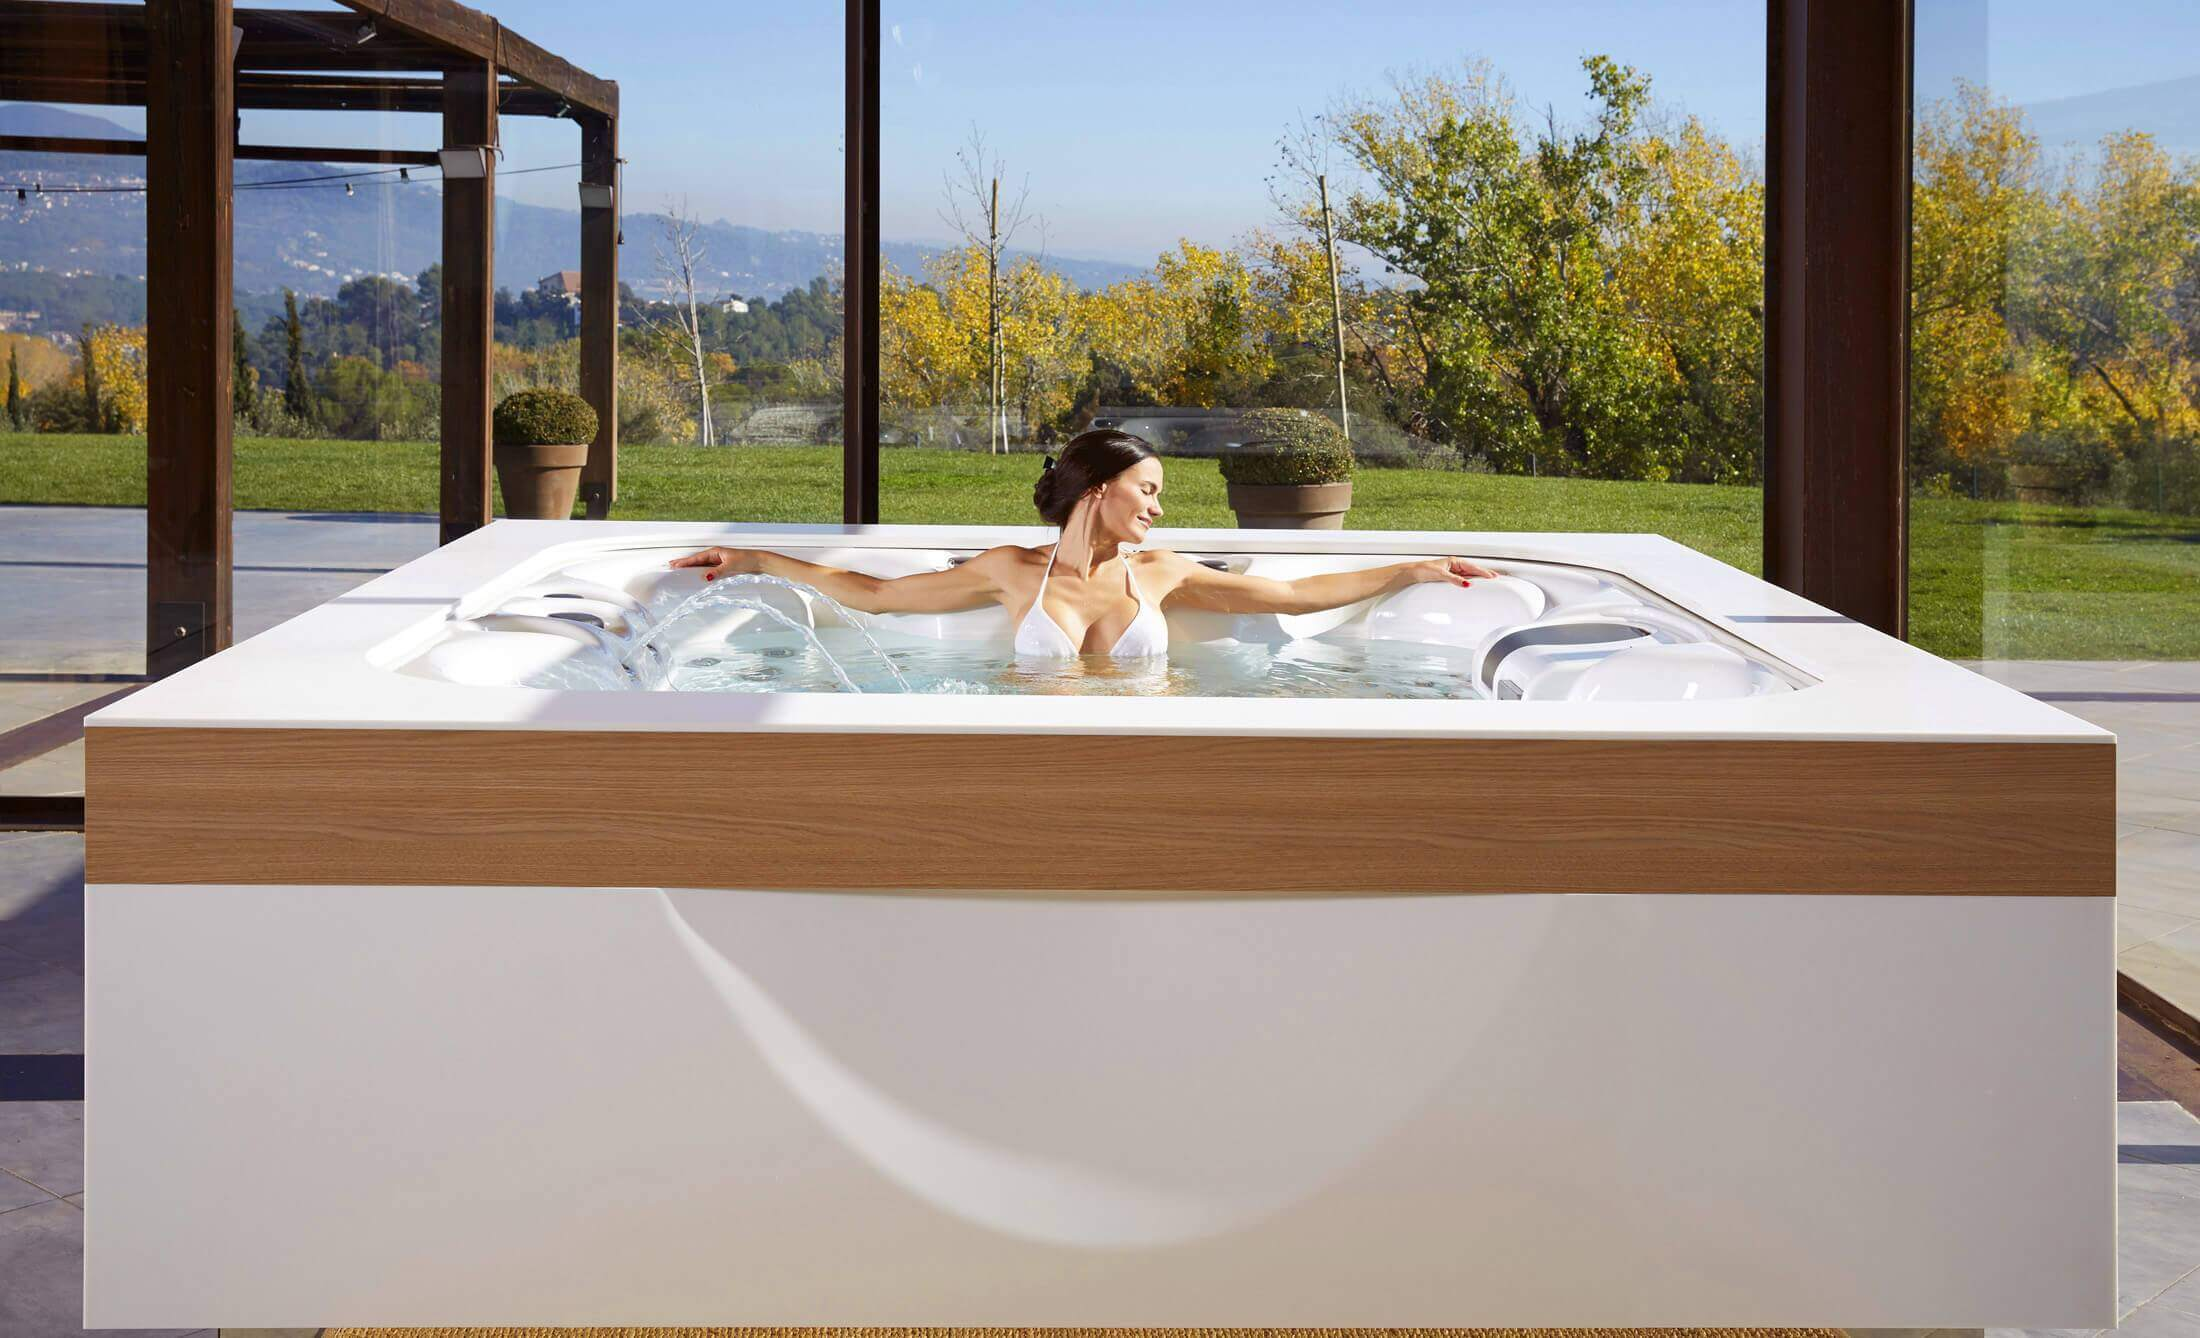 Buy Hot Tub >> Buy Hot Tubs And Hydromassage Tubs Hot Tub Manufacturer Aquavia Spa